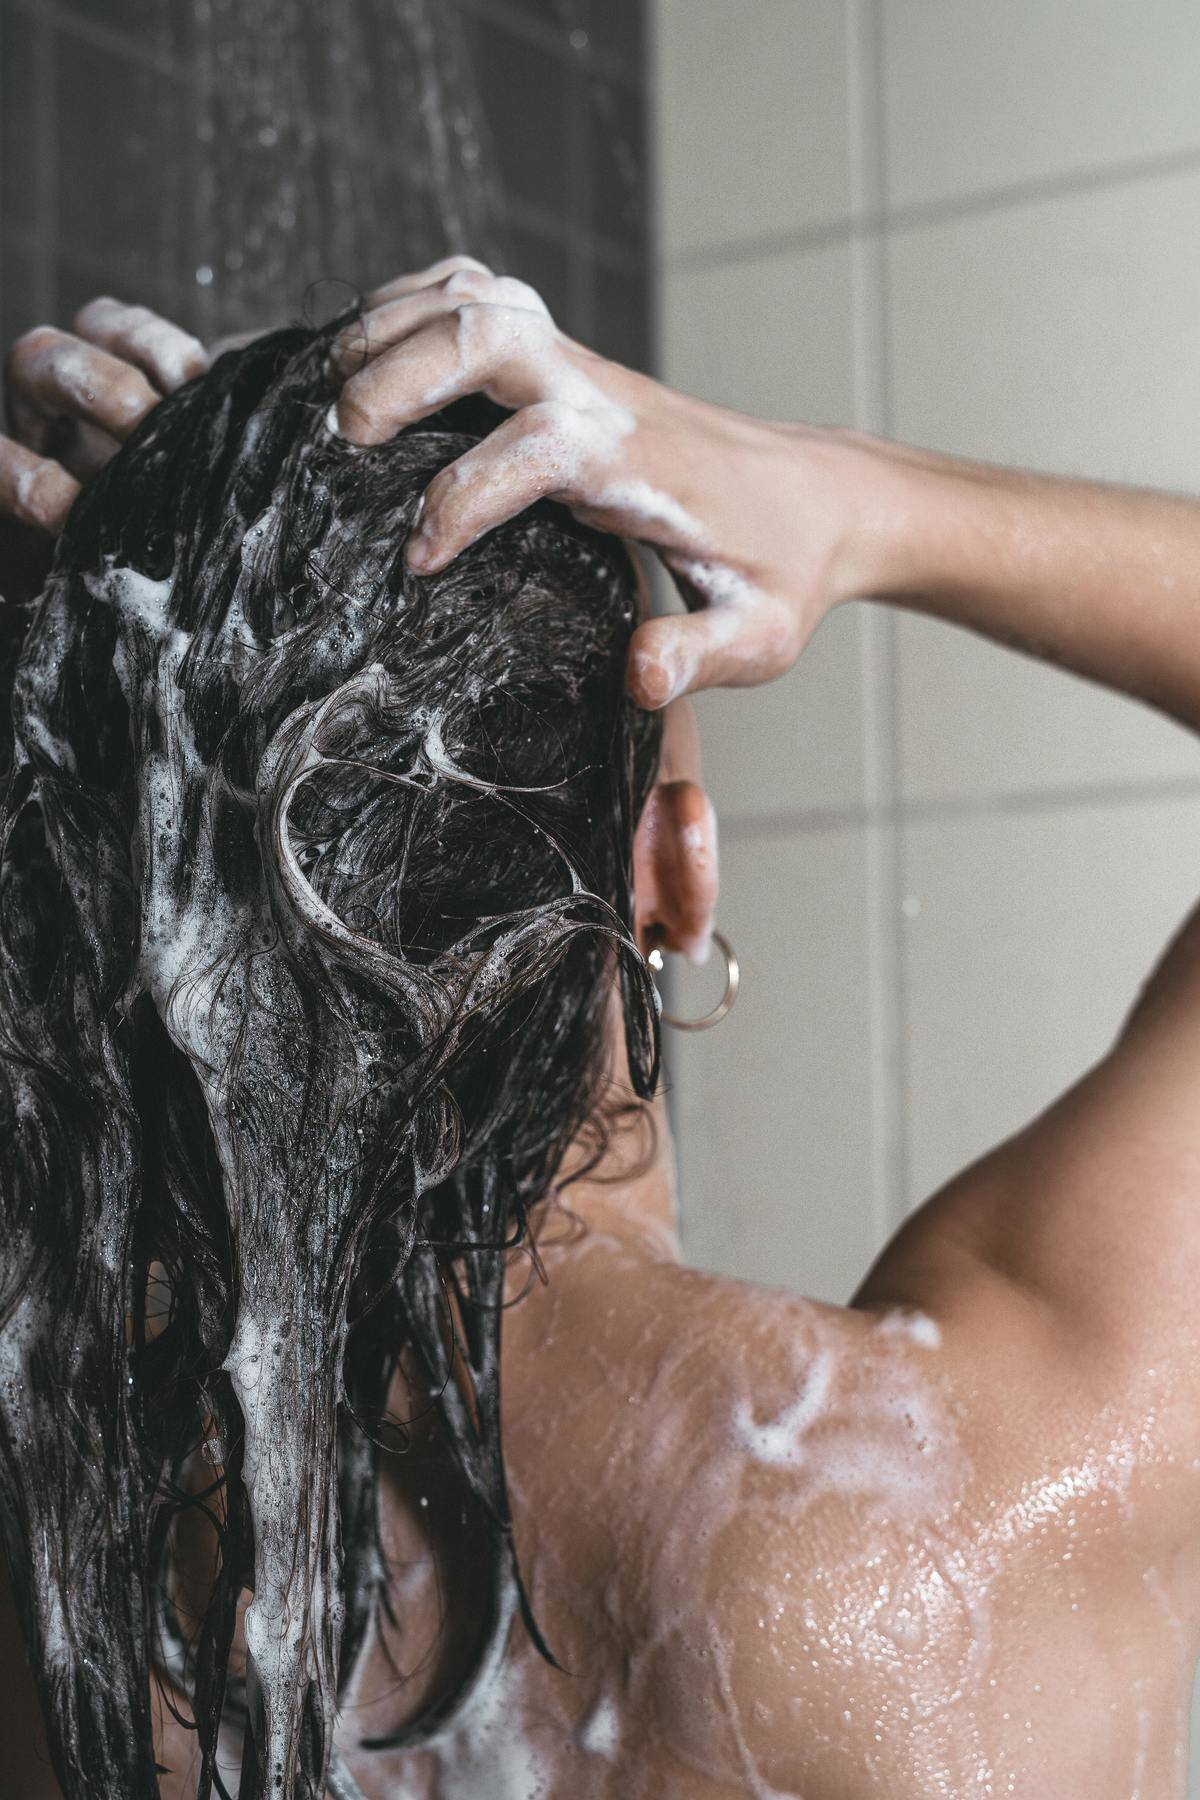 Woman lathering hair in shower